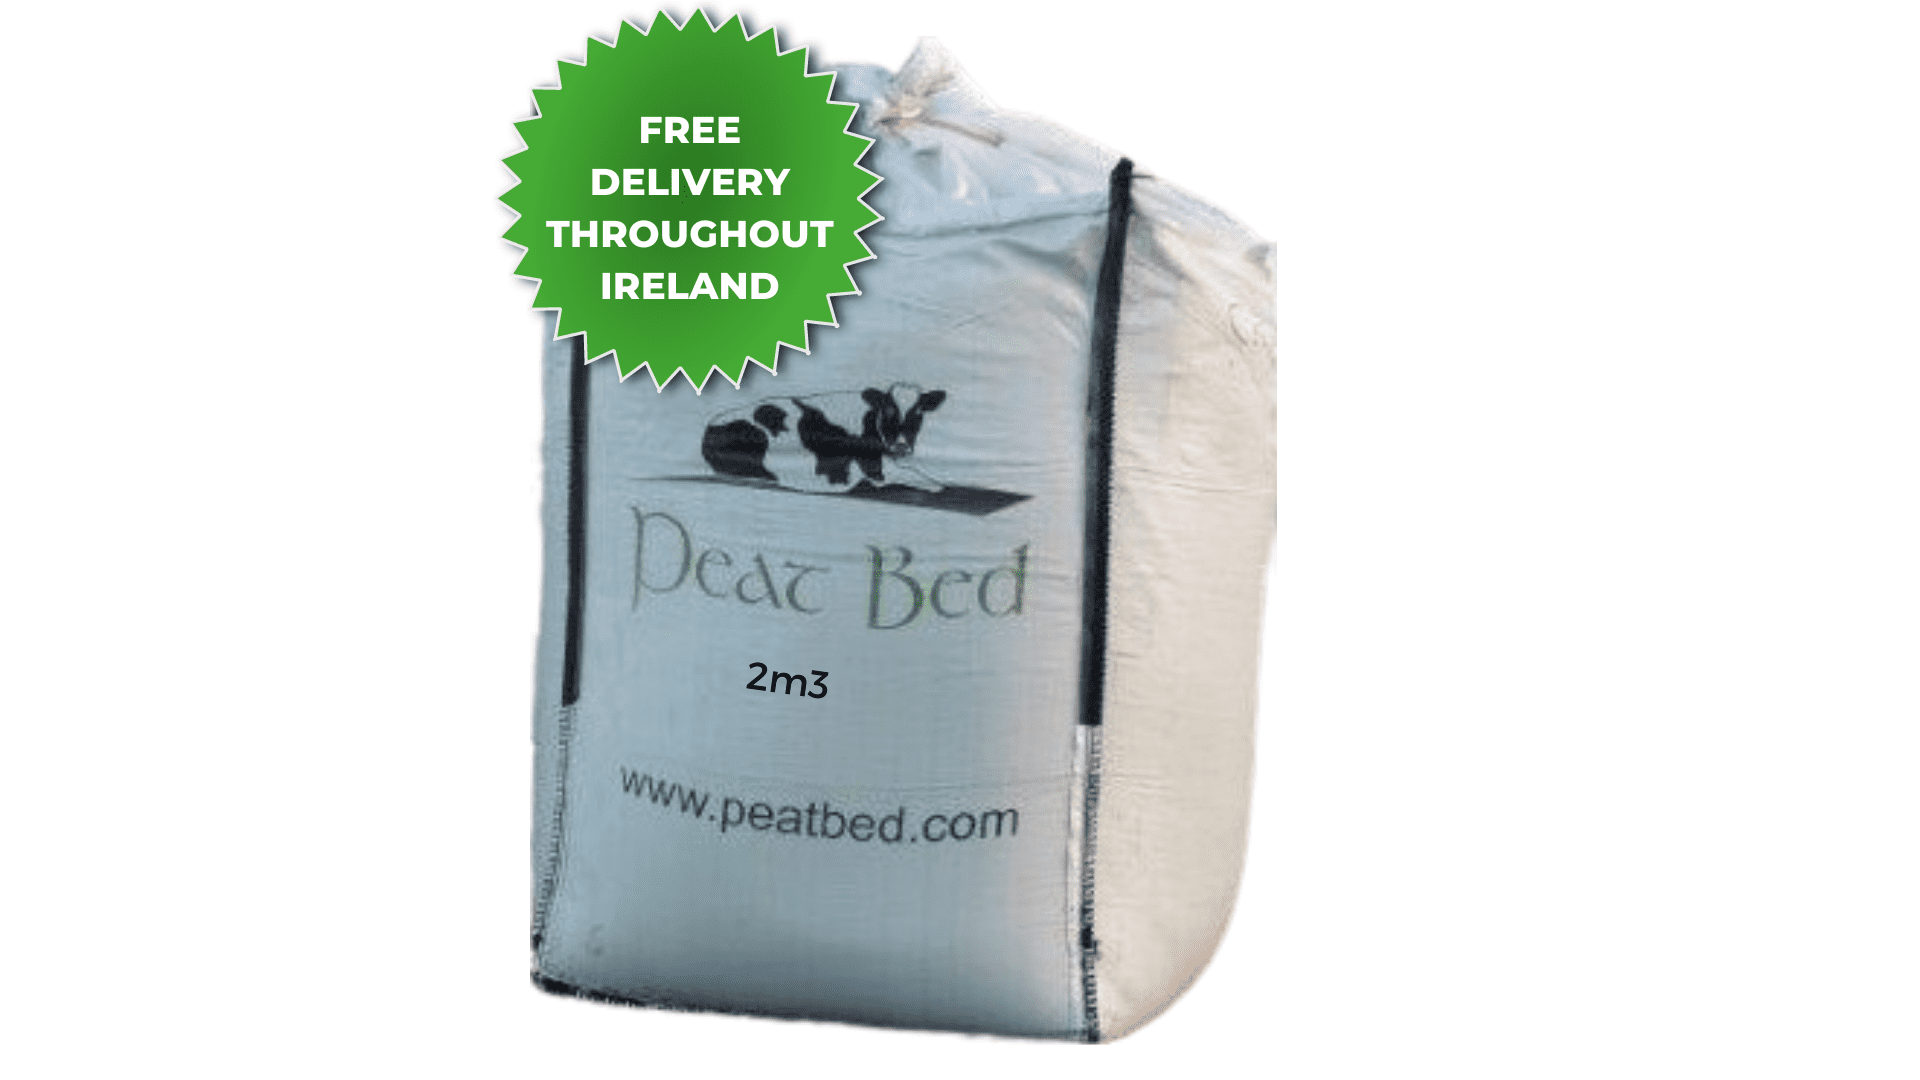 Peat Bed Poultry Bed 2m3 Bag- FREE DELIVERY